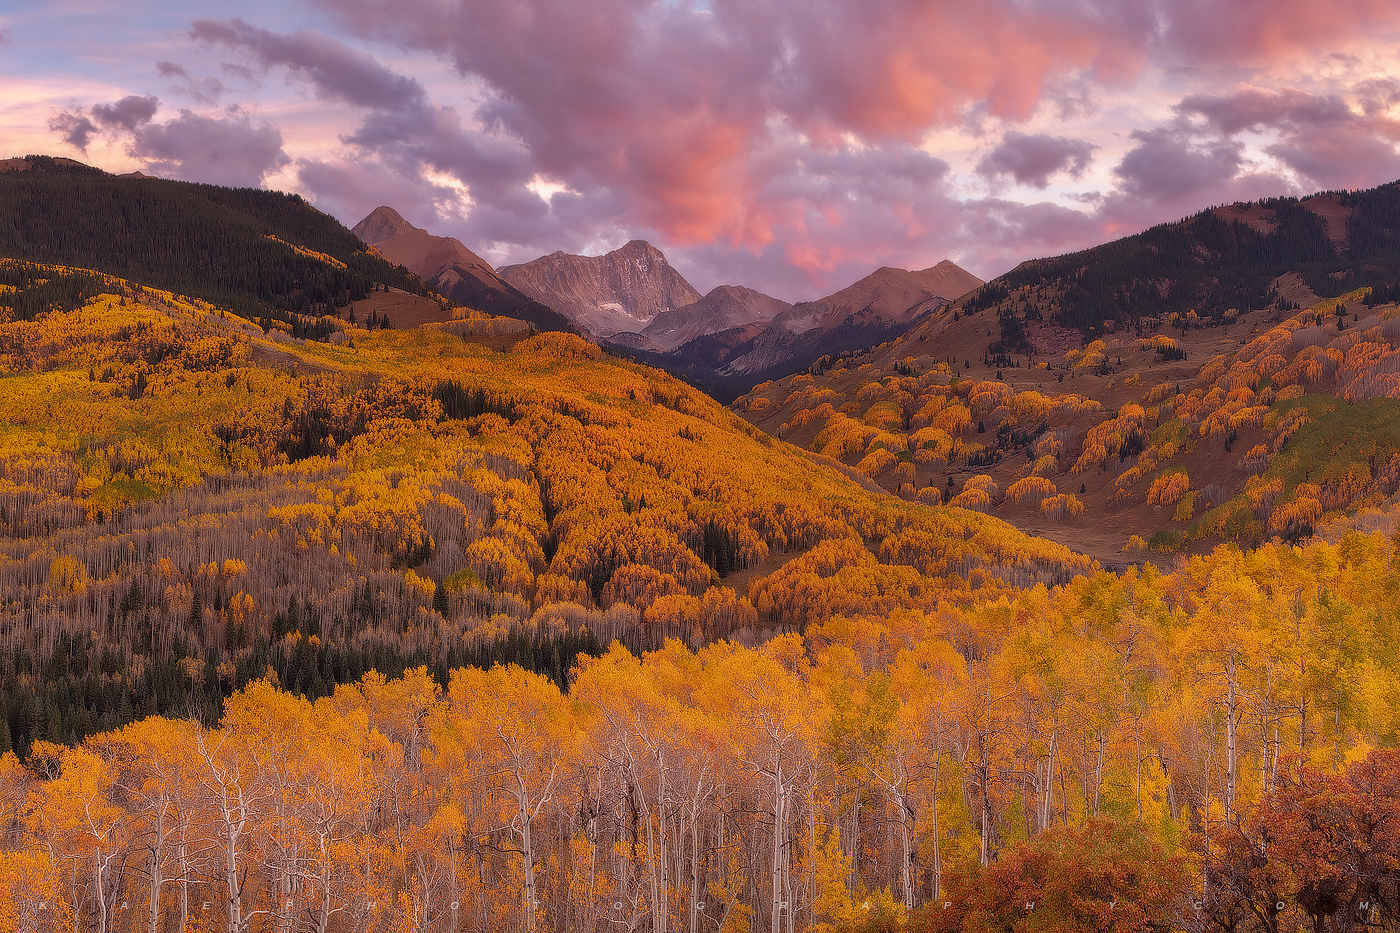 One of my favorite Fall sunsets at Capitol Creek.